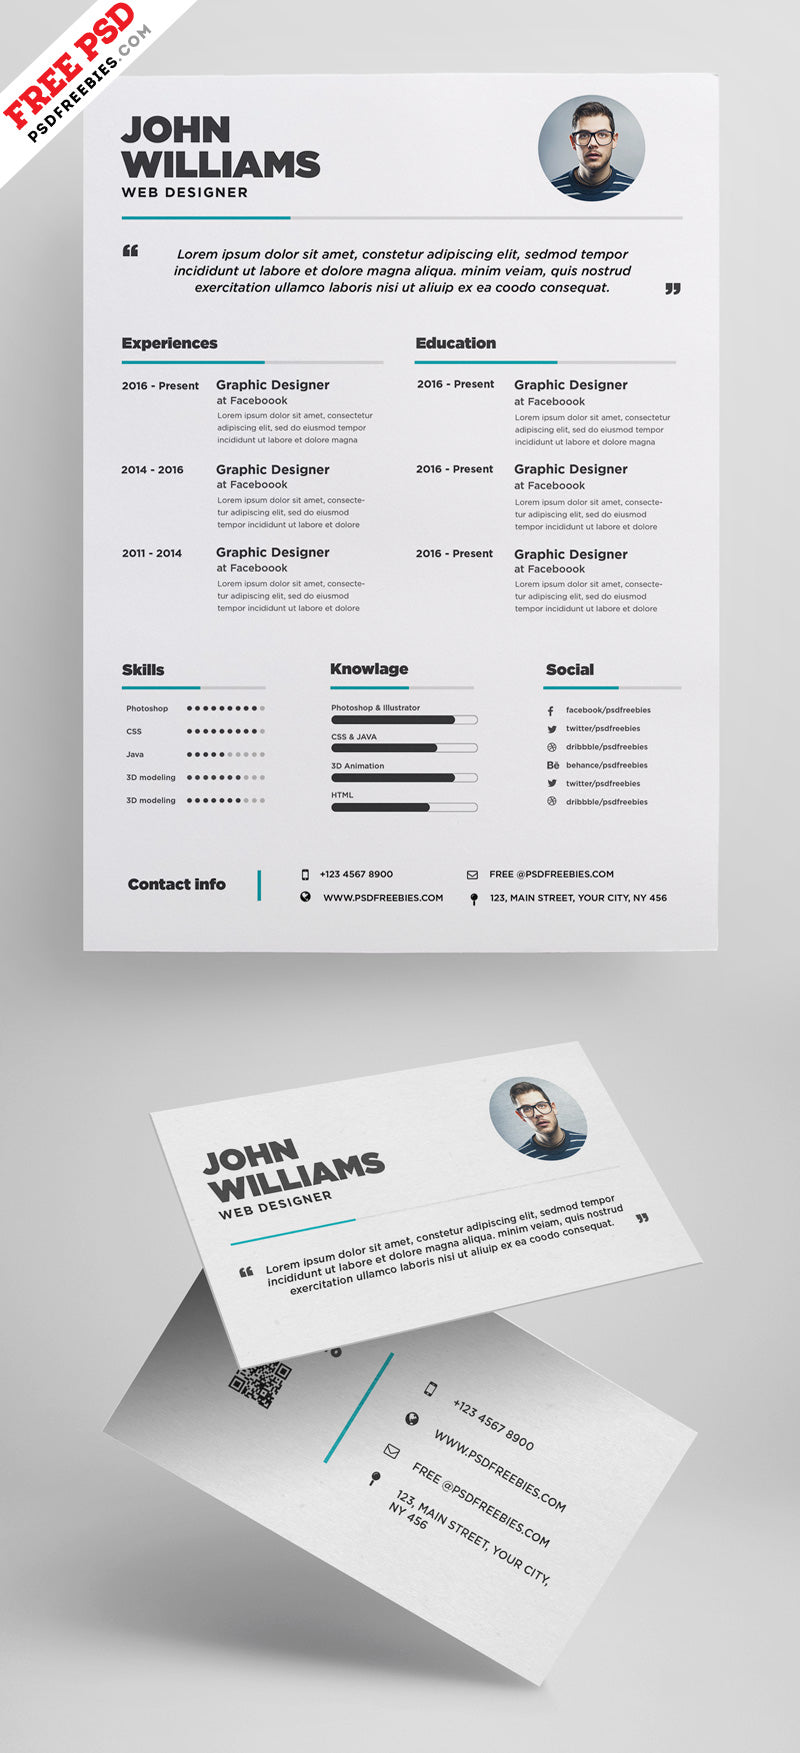 Free cv resume and business card design templates in photoshop psd free cv resume and business card design templates in photoshop psd format wajeb Image collections